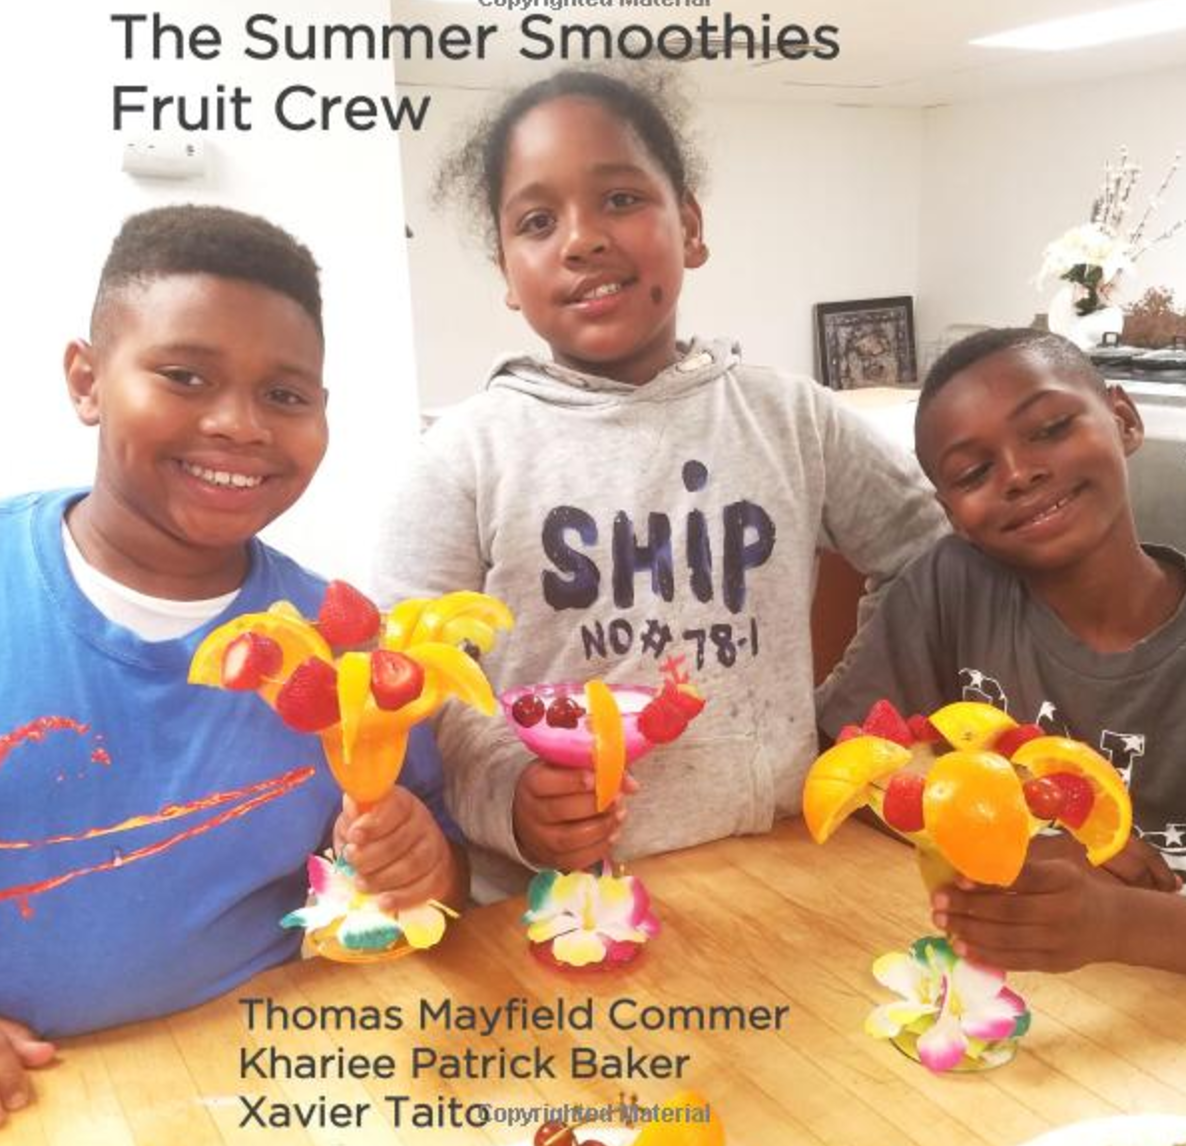 The Summer Smoothies Fruit Crew   In thinking about ways to improve our community, we decided that we could help by teaching people how to make healthy summer treats. Read our book to learn how we make fruit smoothies.   Buy this book.